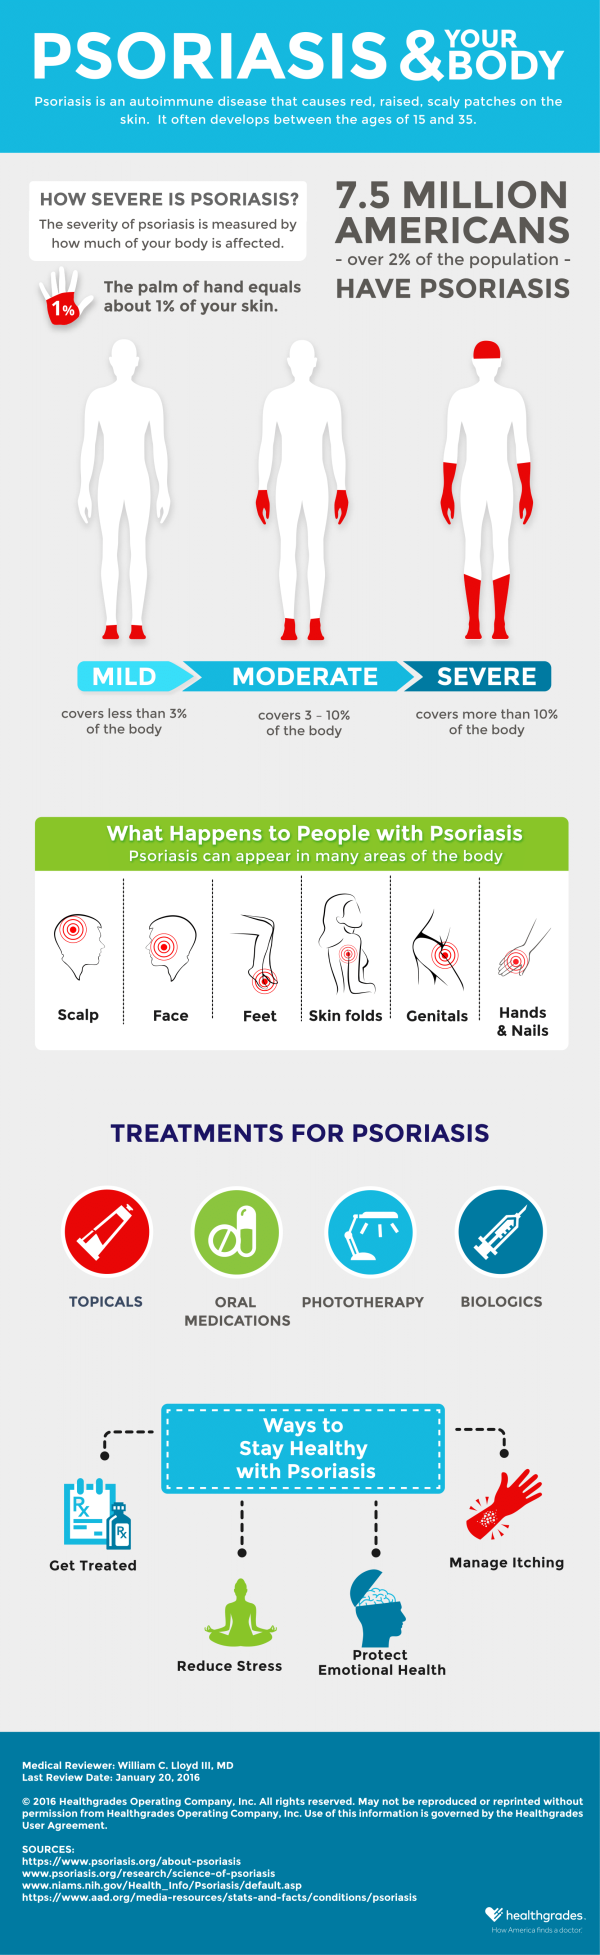 Psoriasis and Your Body